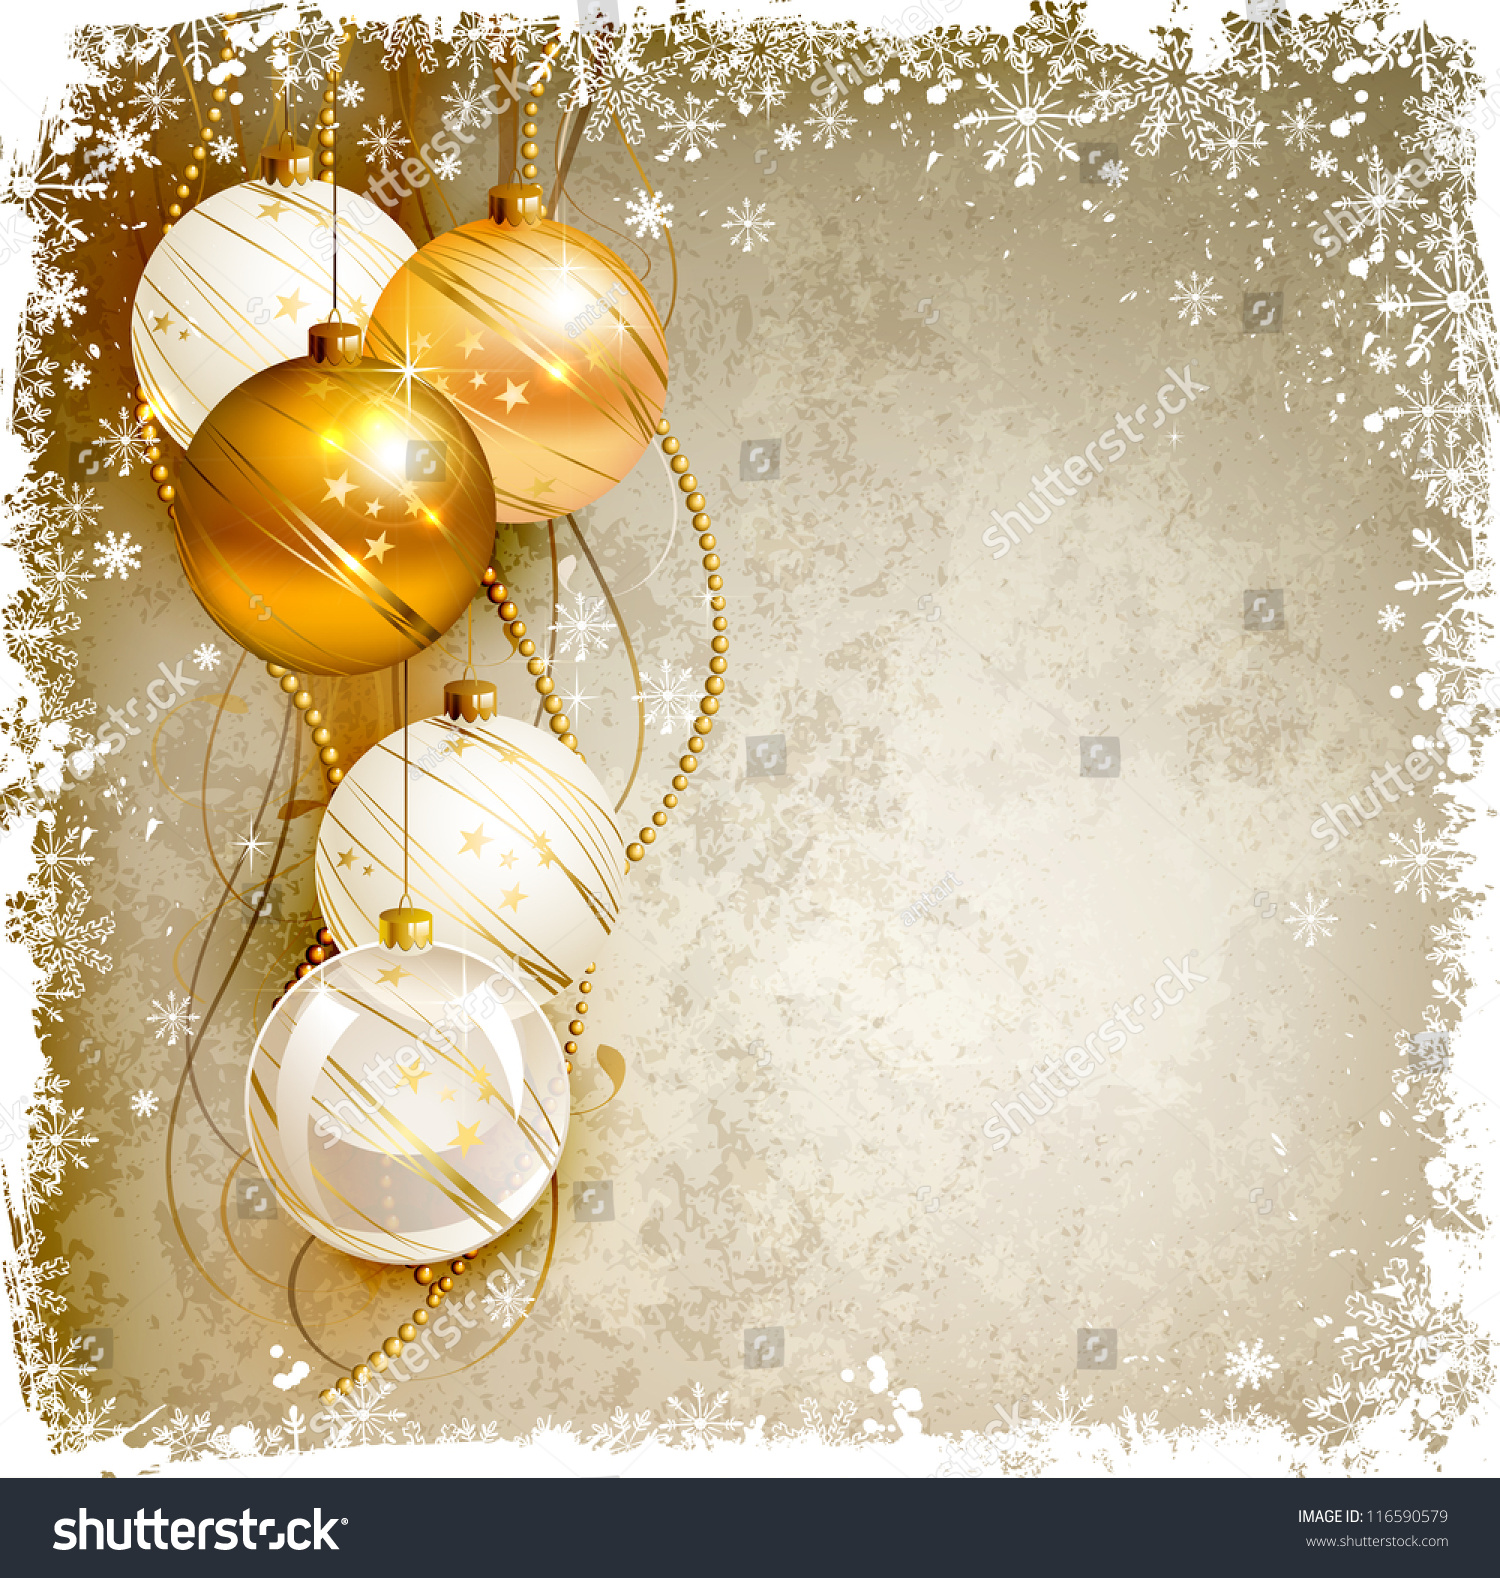 Elegant Christmas Background With Gold And White Evening Baubles Stock ...